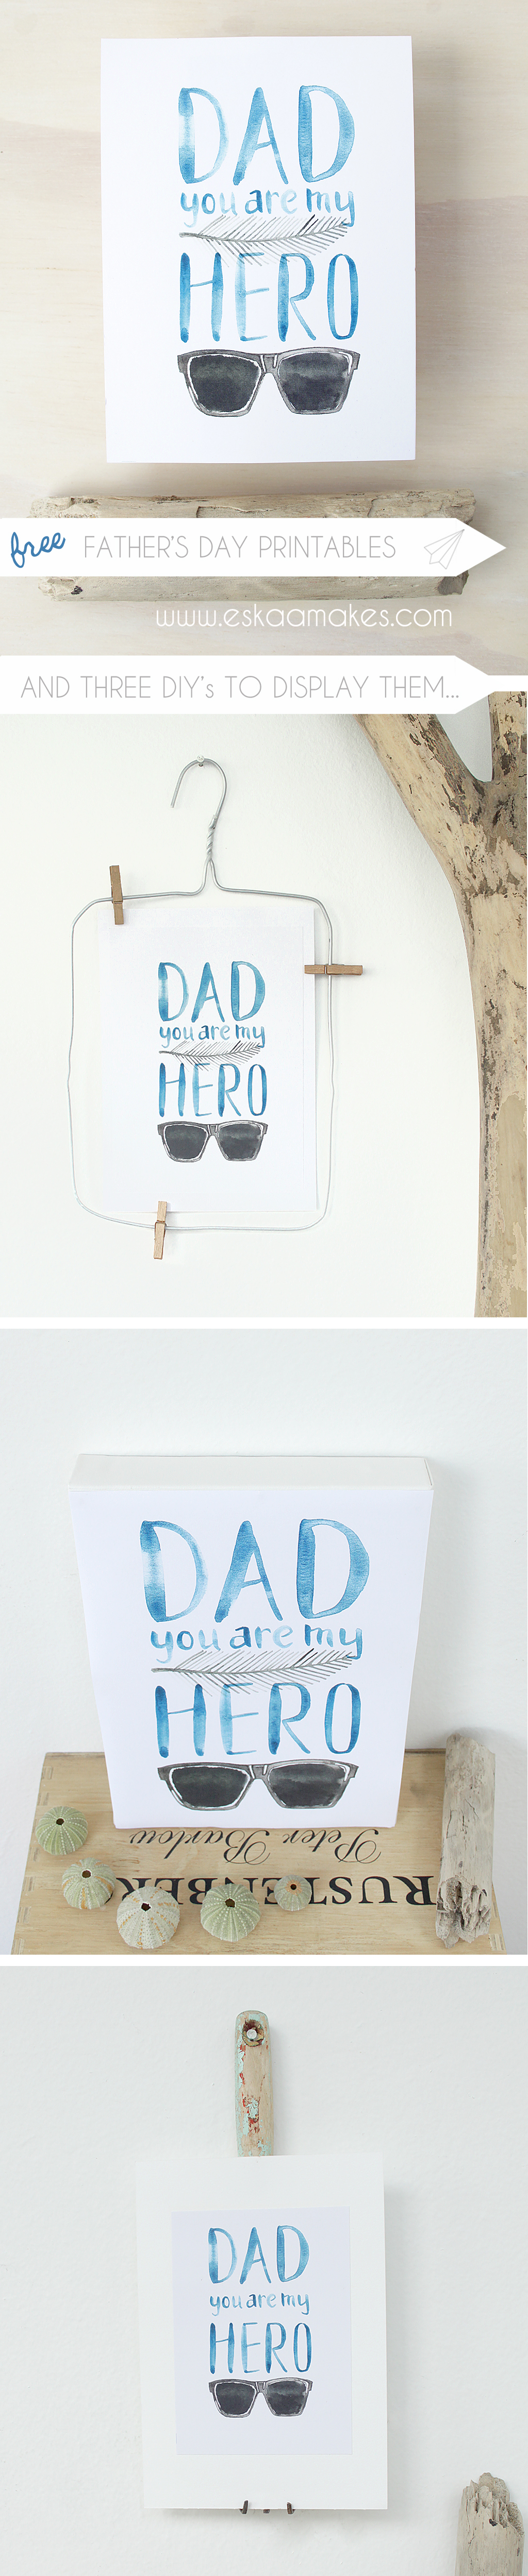 printable fathers day Pinterest